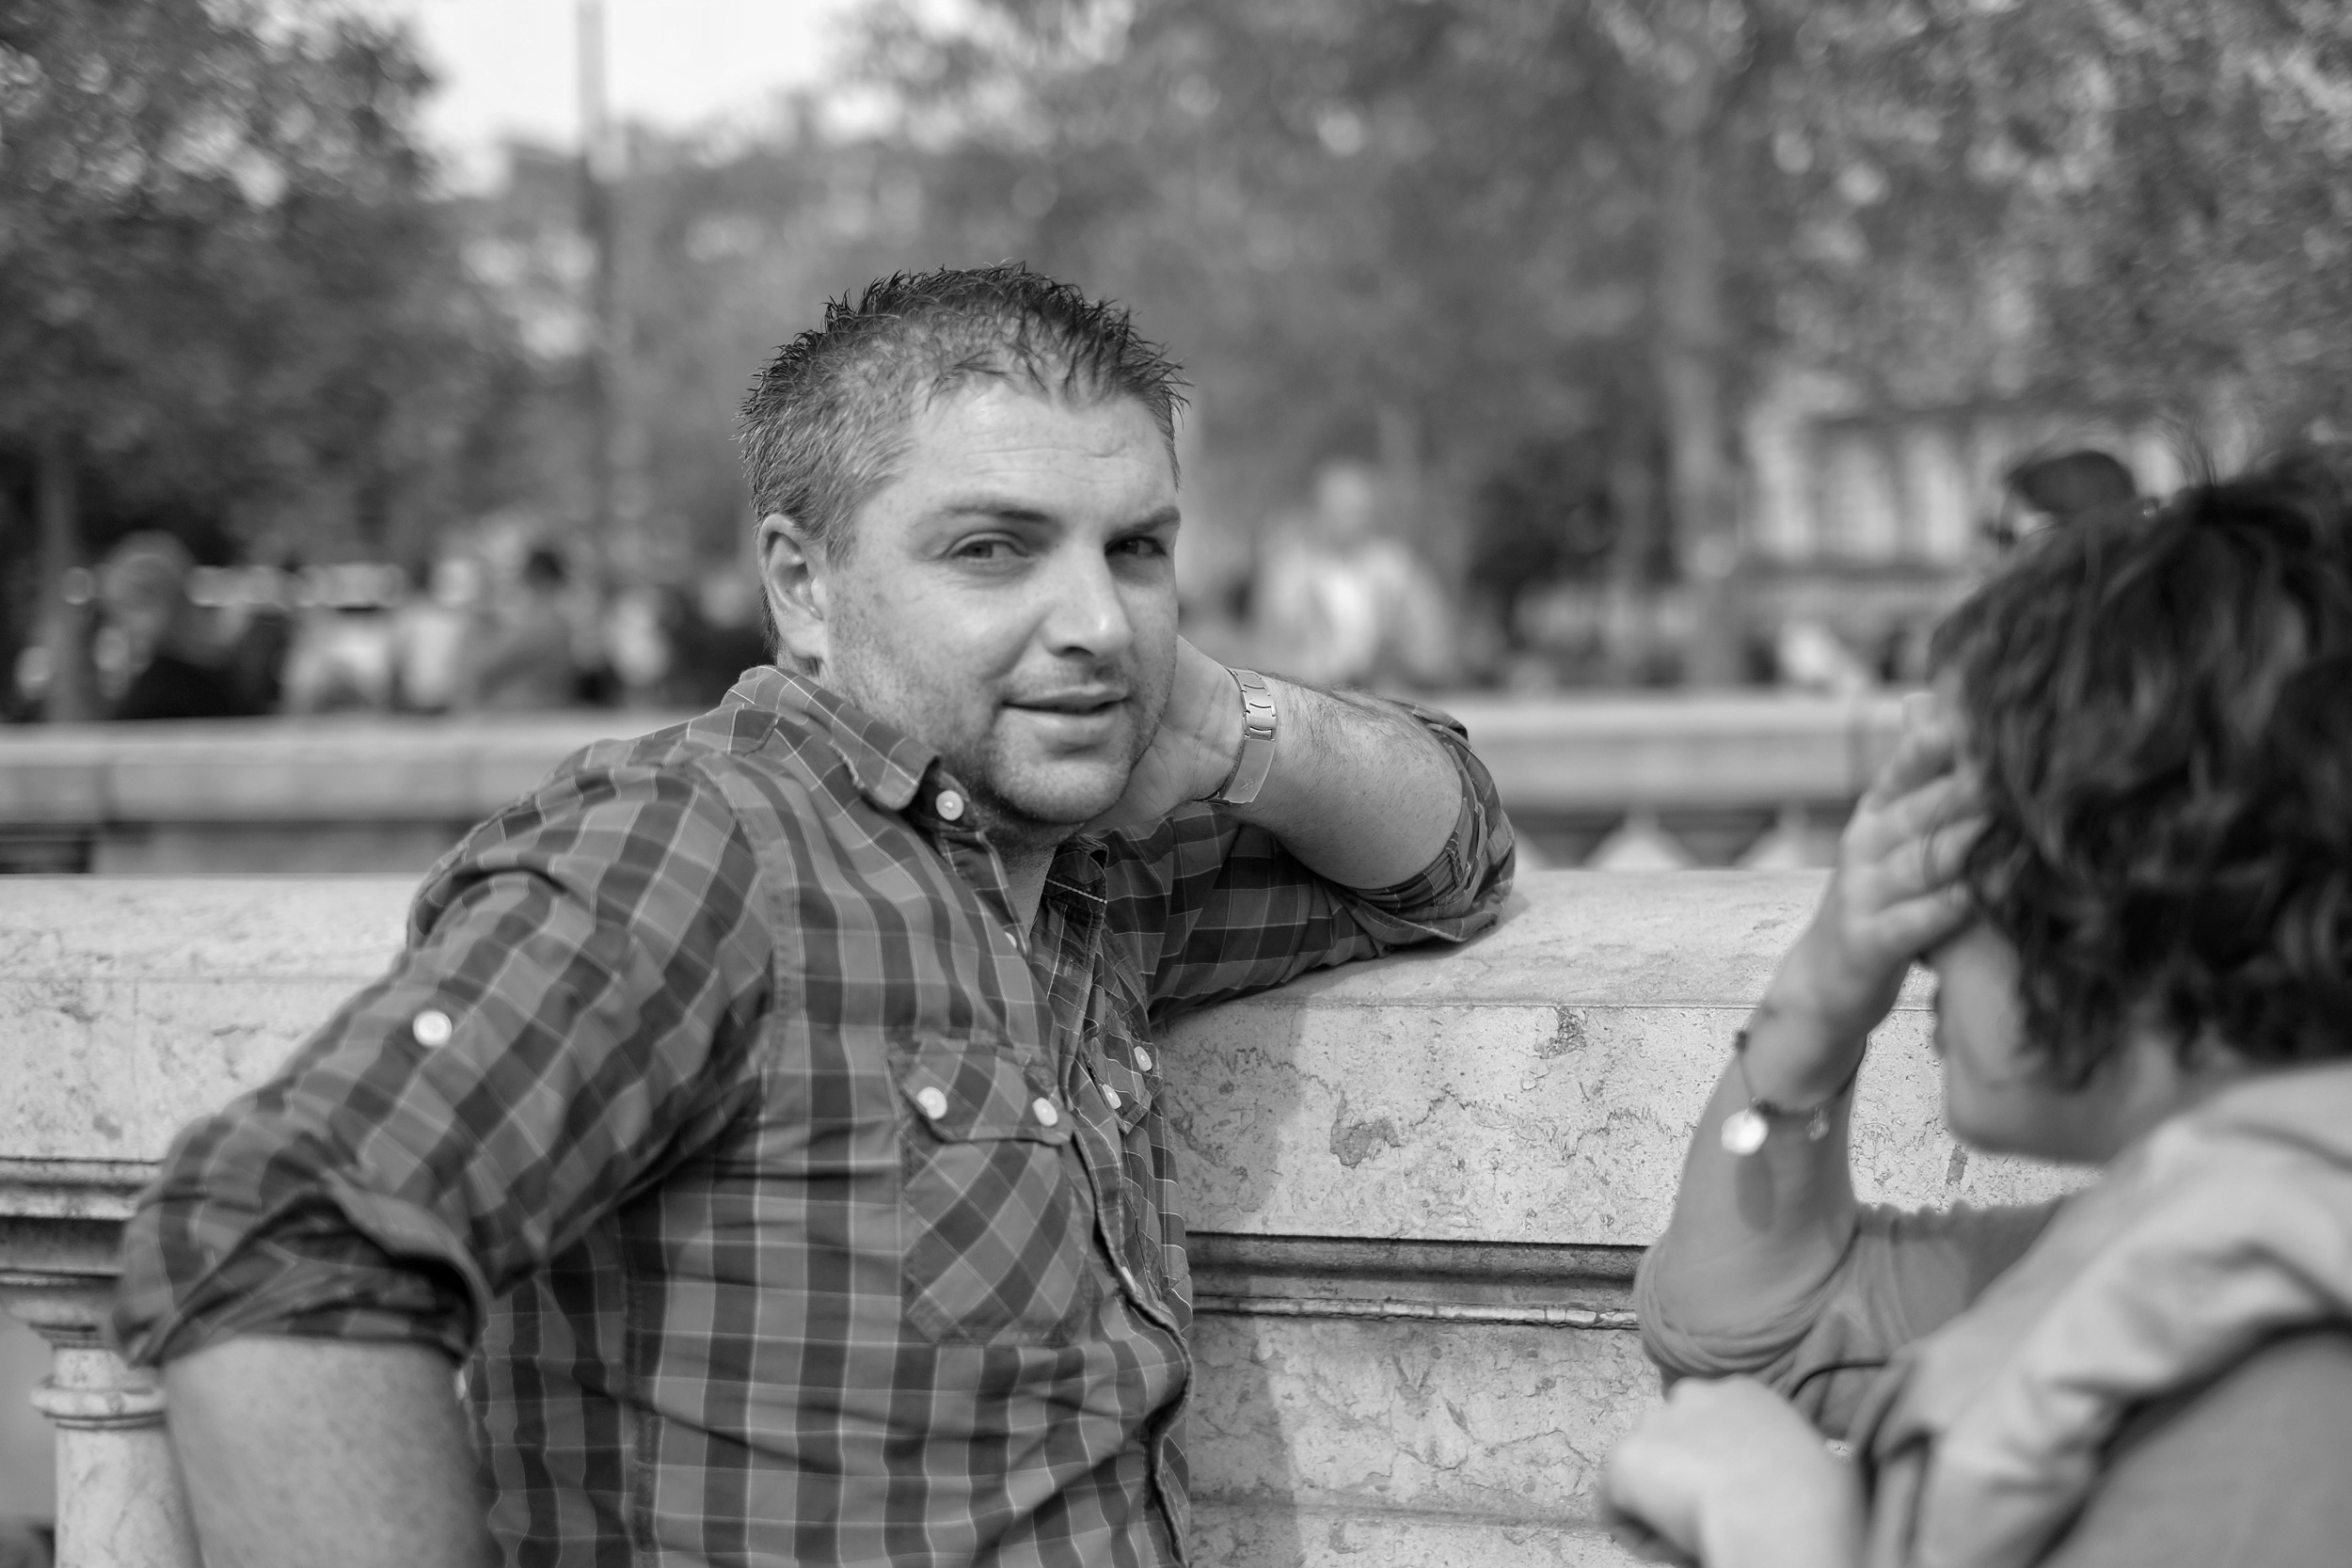 Man talking on the Champs Elysee, Paris - Fuji X-Pro1